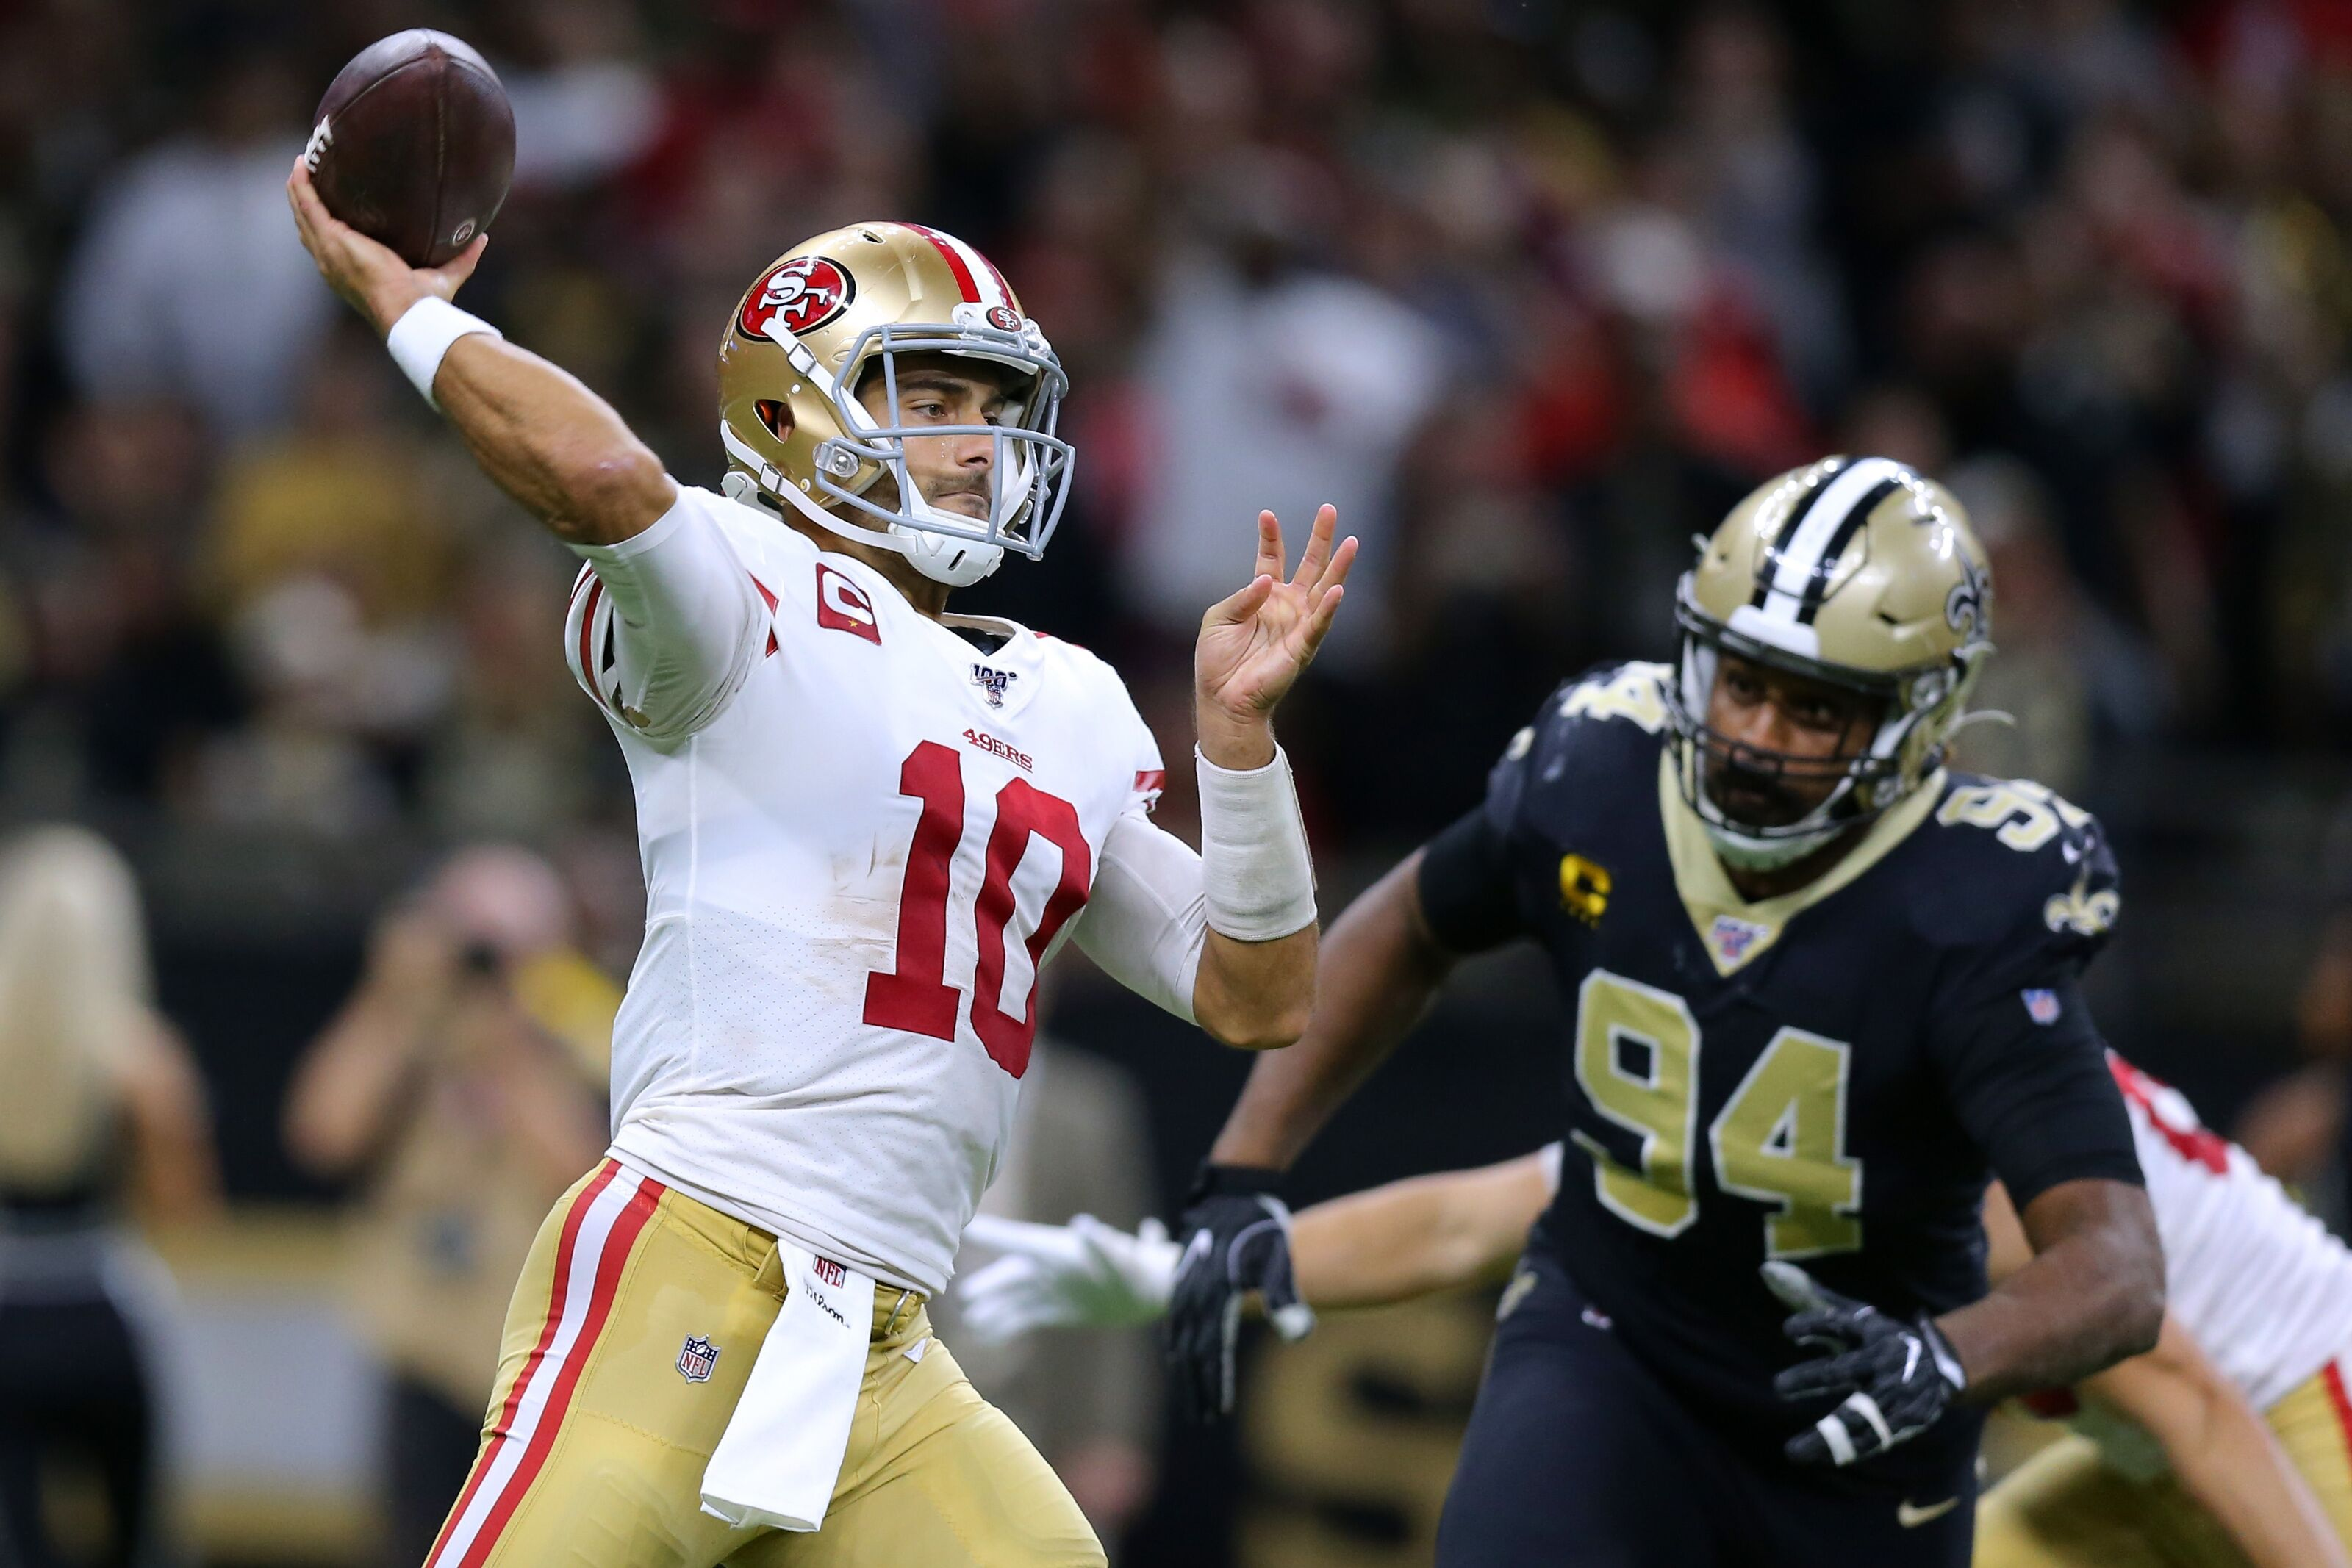 The Saints haven't proven themselves this season against contenders